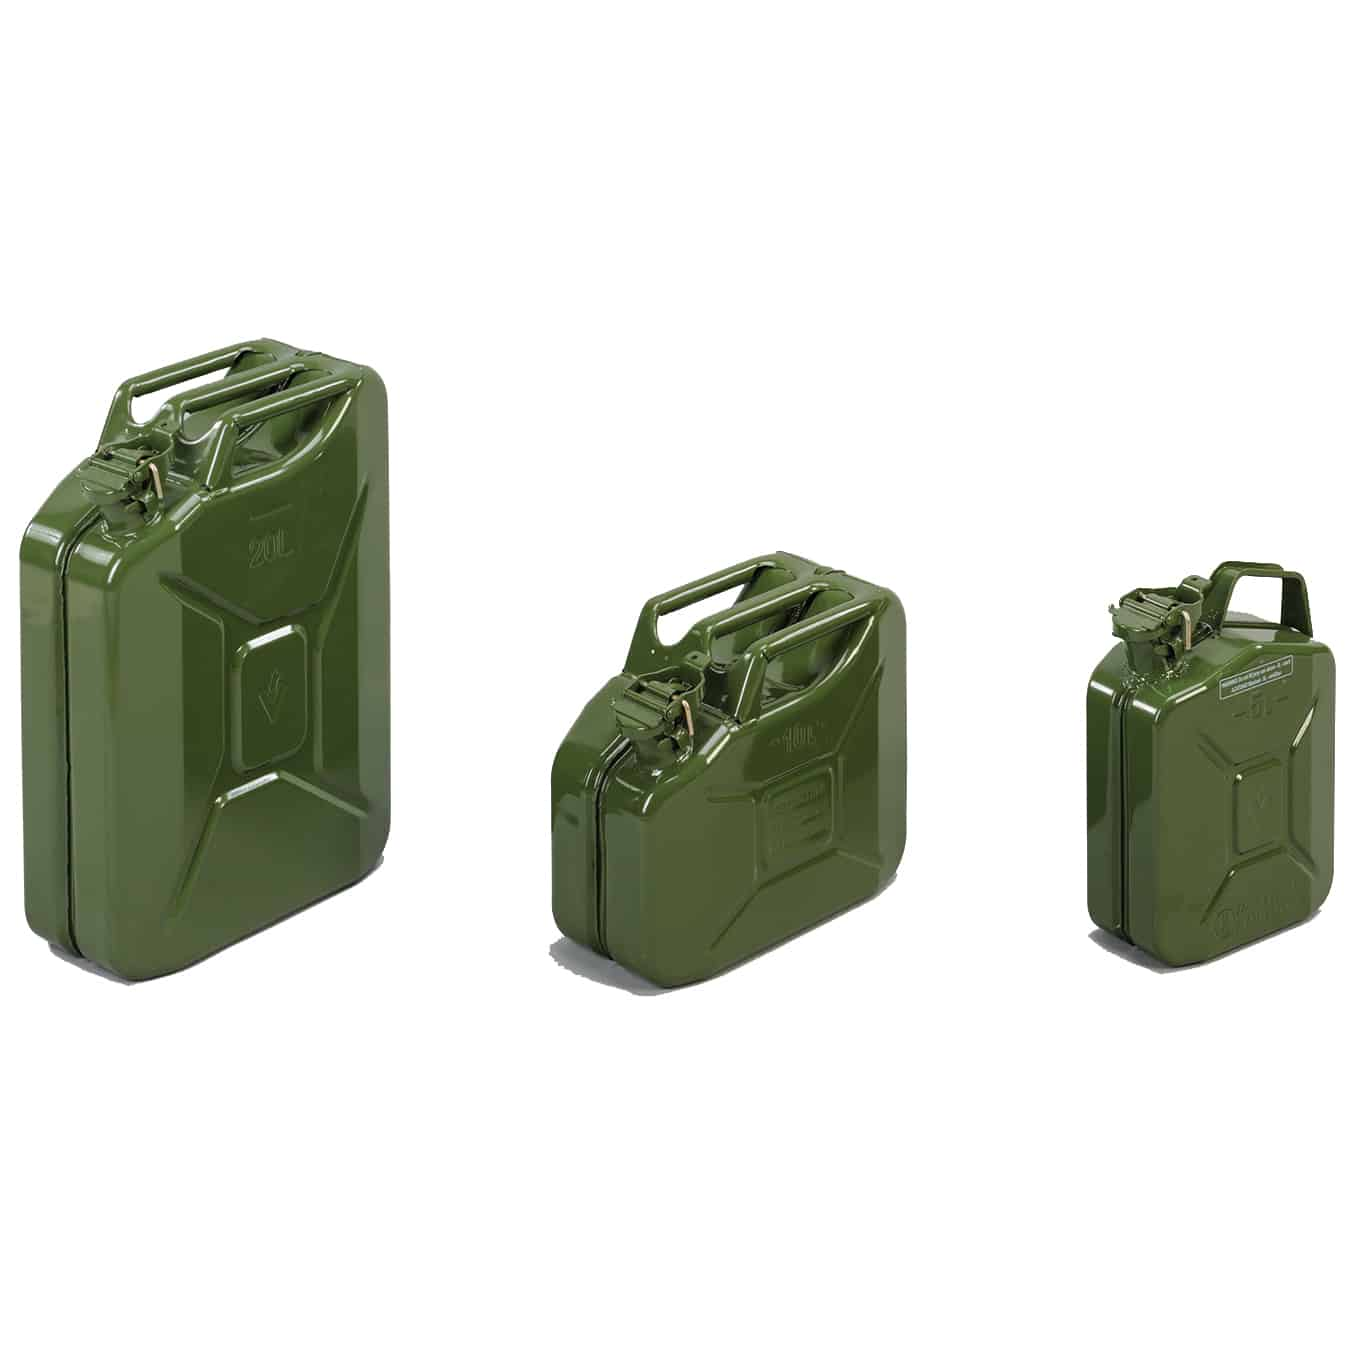 Valpro Traditional Mild Steel Jerry Cans